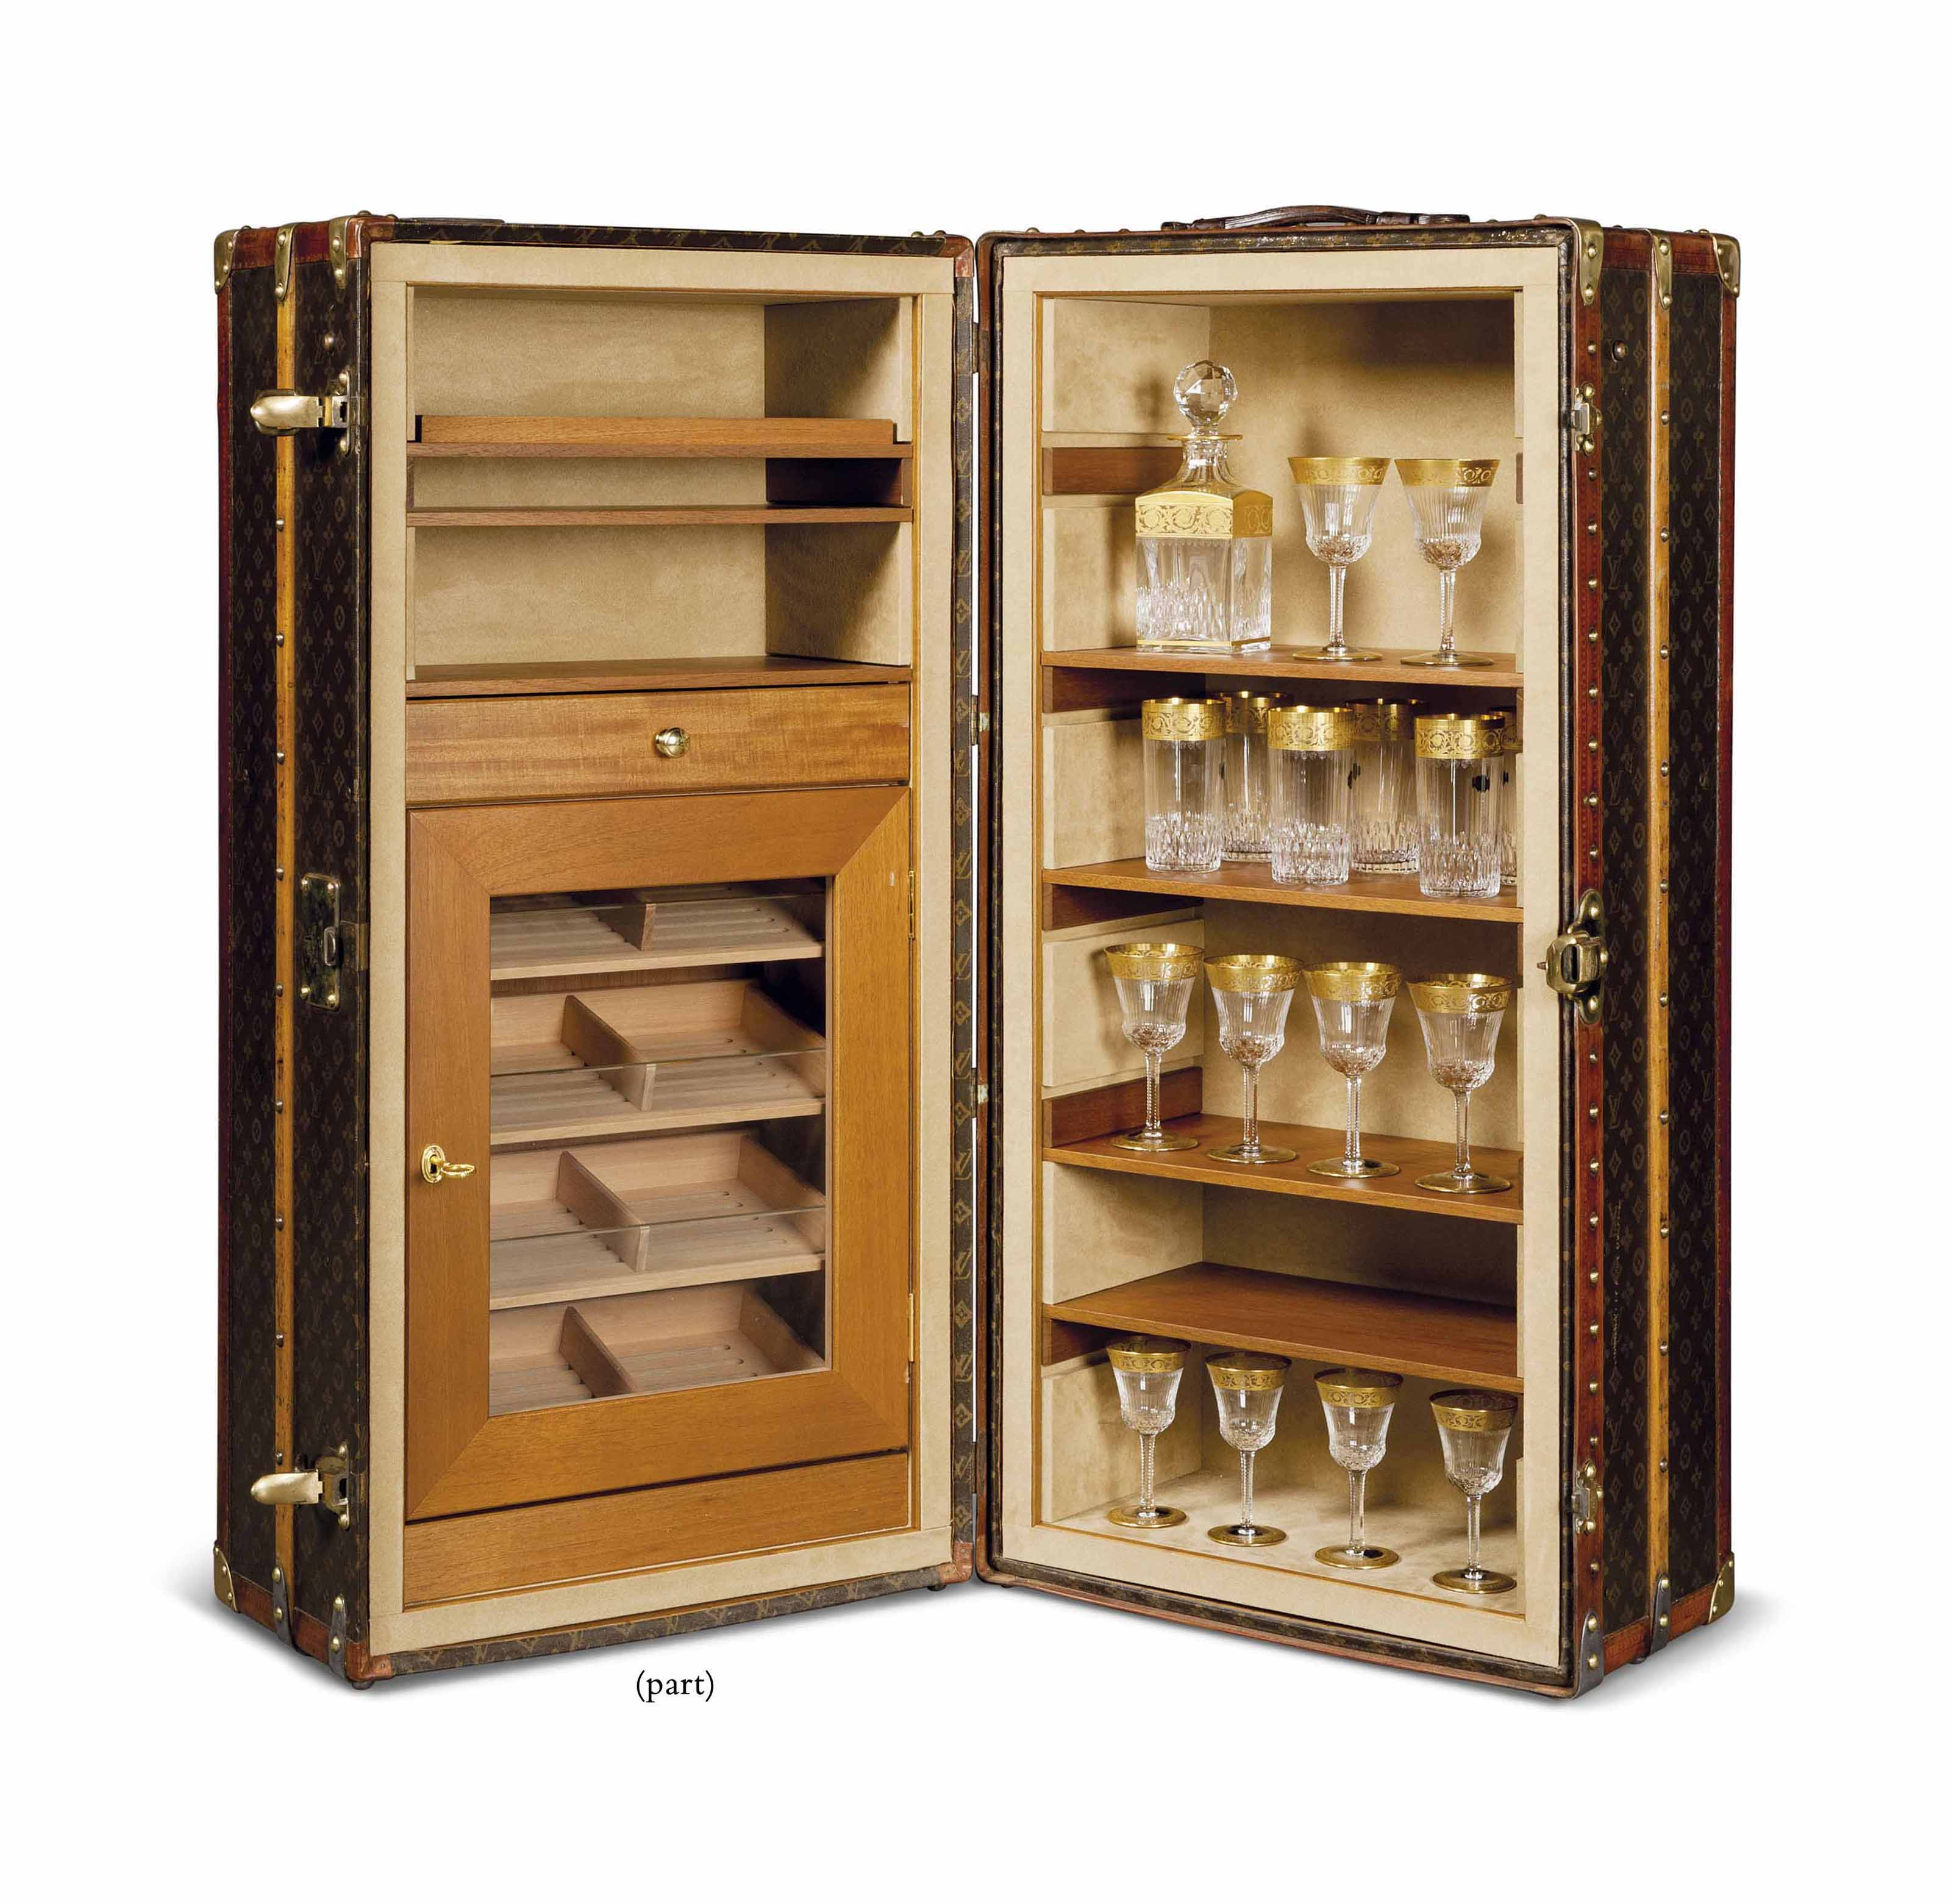 A LOUIS VUITTON WARDROBE TRUNK MODIFIED AS A COCKTAIL BAR AND HUMIDOR